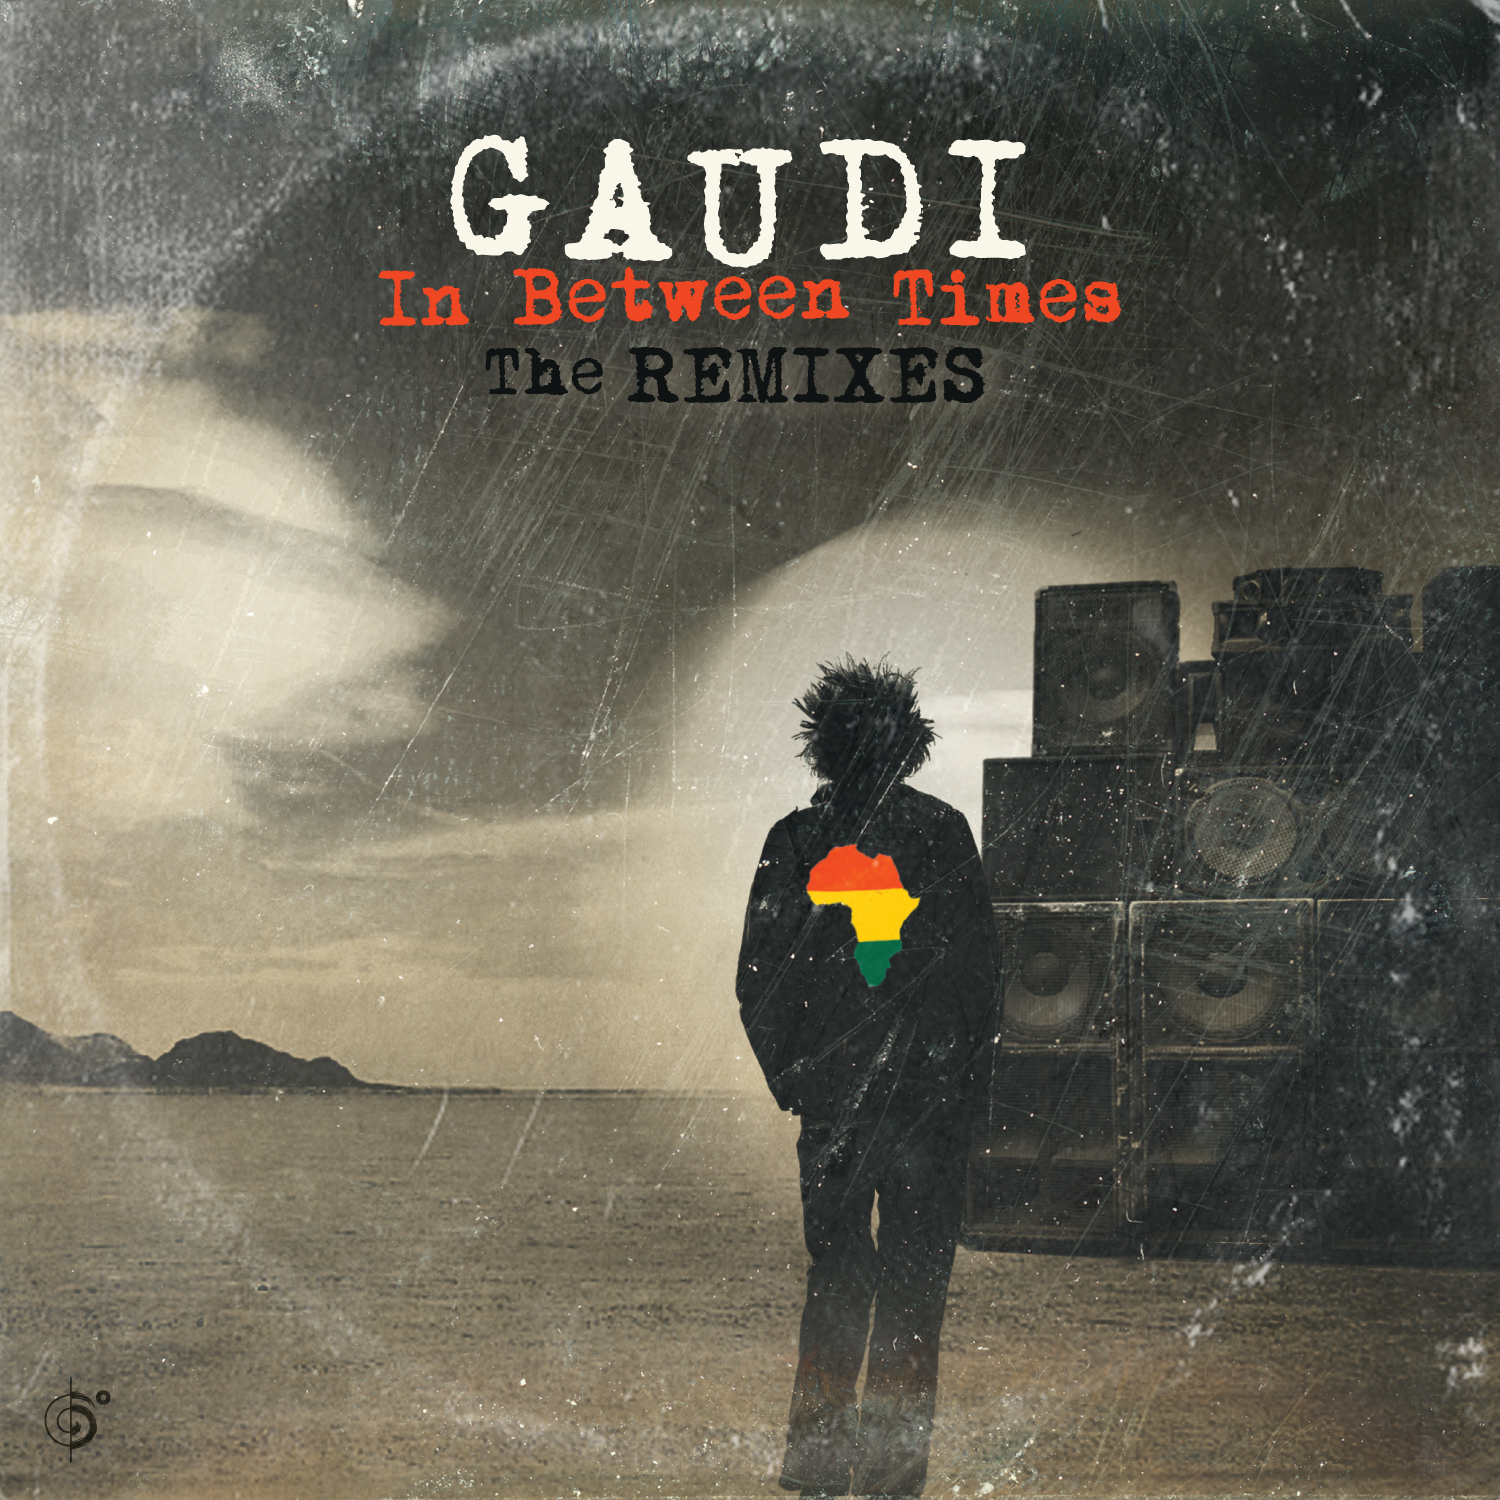 Gaudi – In Between Times (The Remixes) Out on 05.06.16